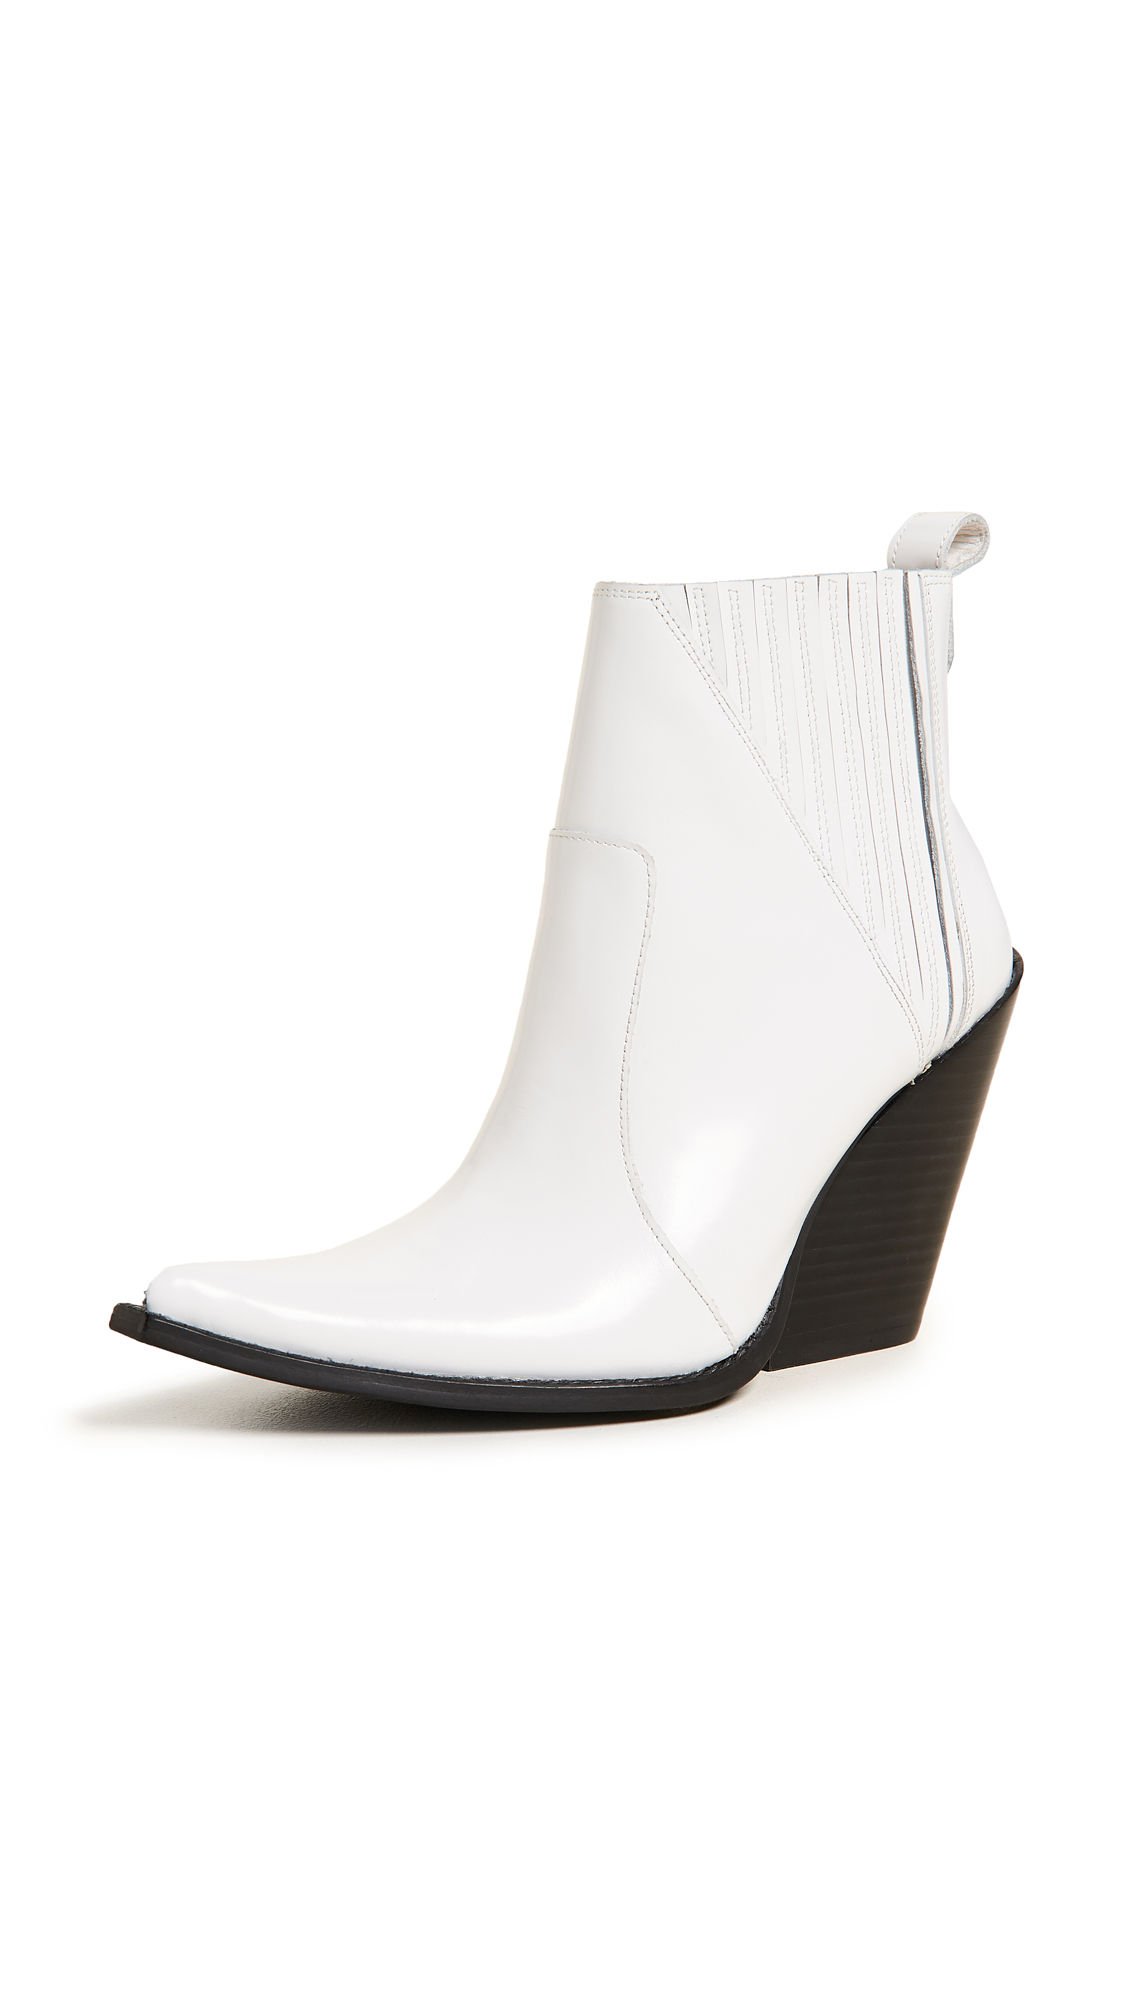 Jeffrey Campbell Homage Point Toe Booties - White Box